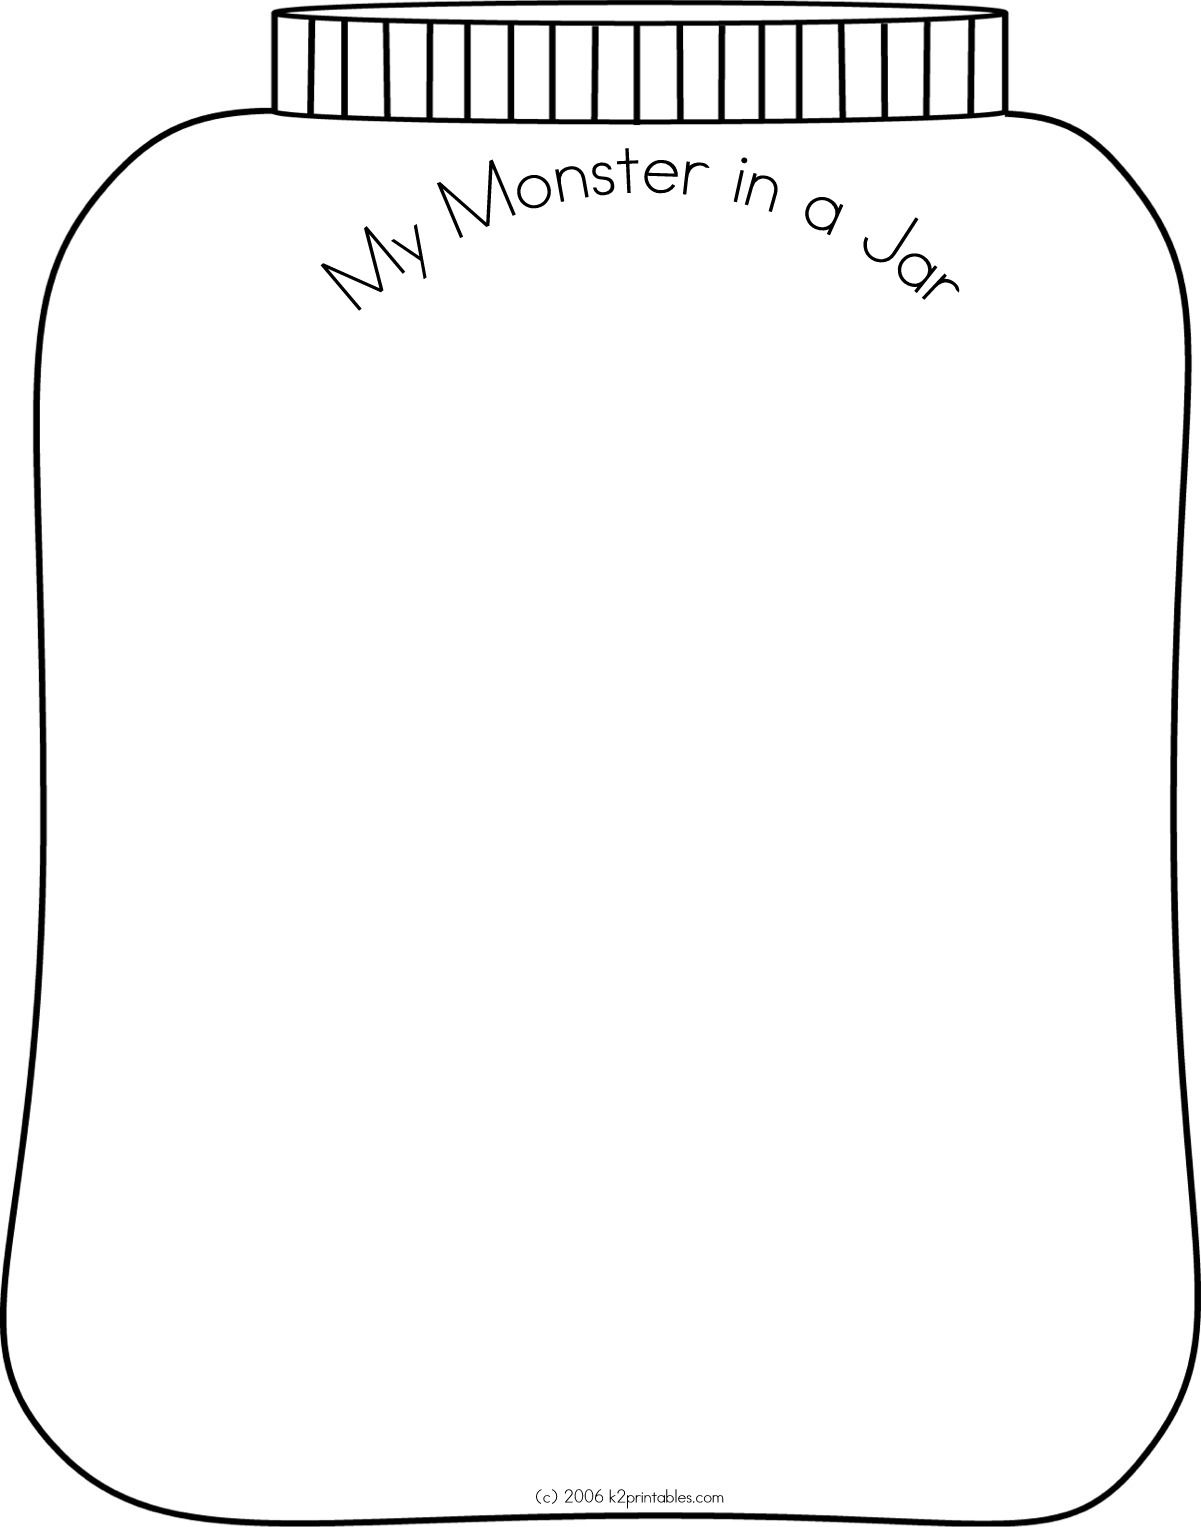 Monster in a jar. Draw a huge, squished monster in a jar